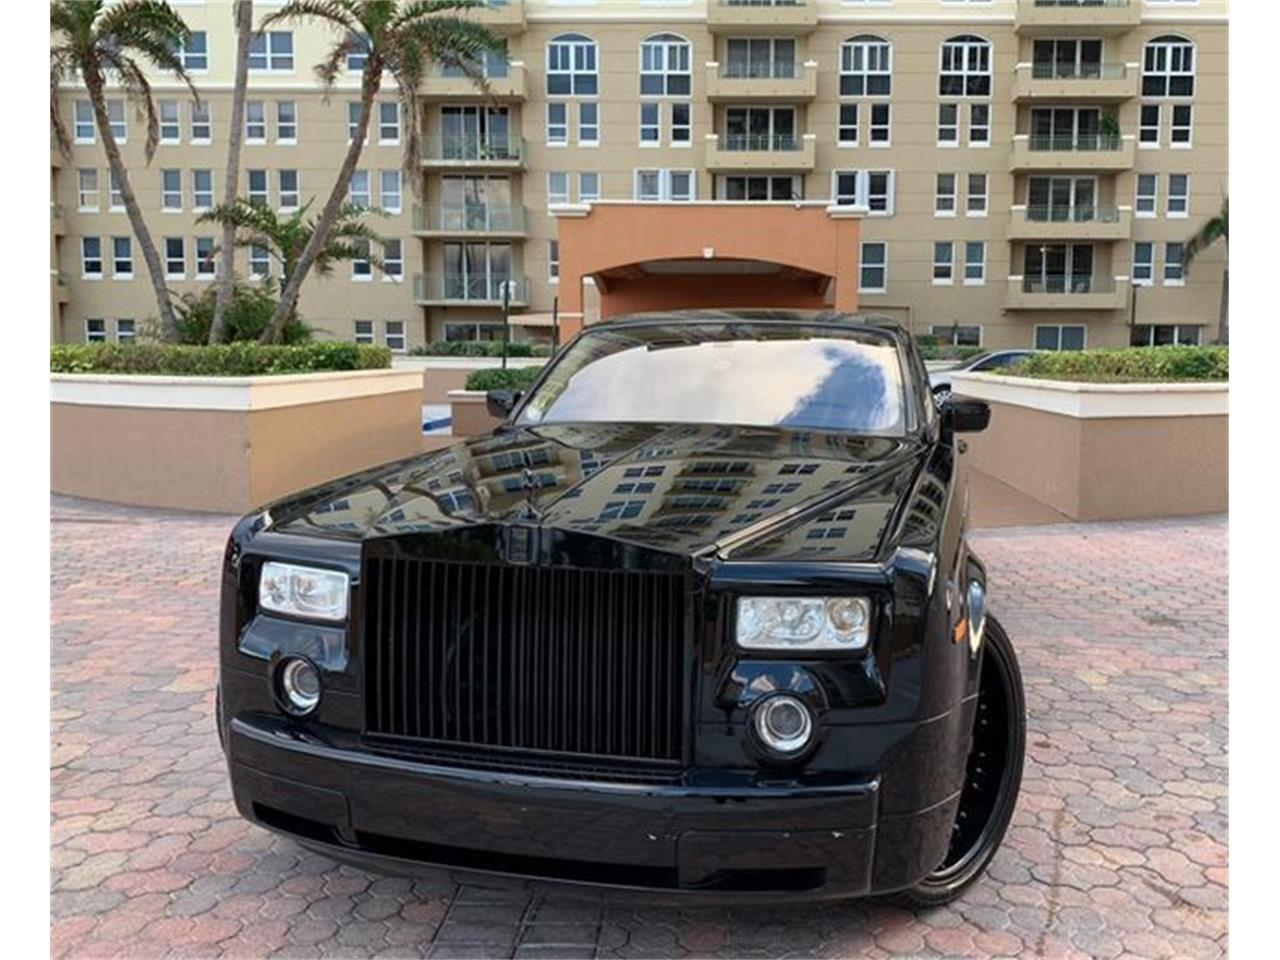 2006 Rolls-Royce Phantom for sale in Valley Park, MO – photo 84